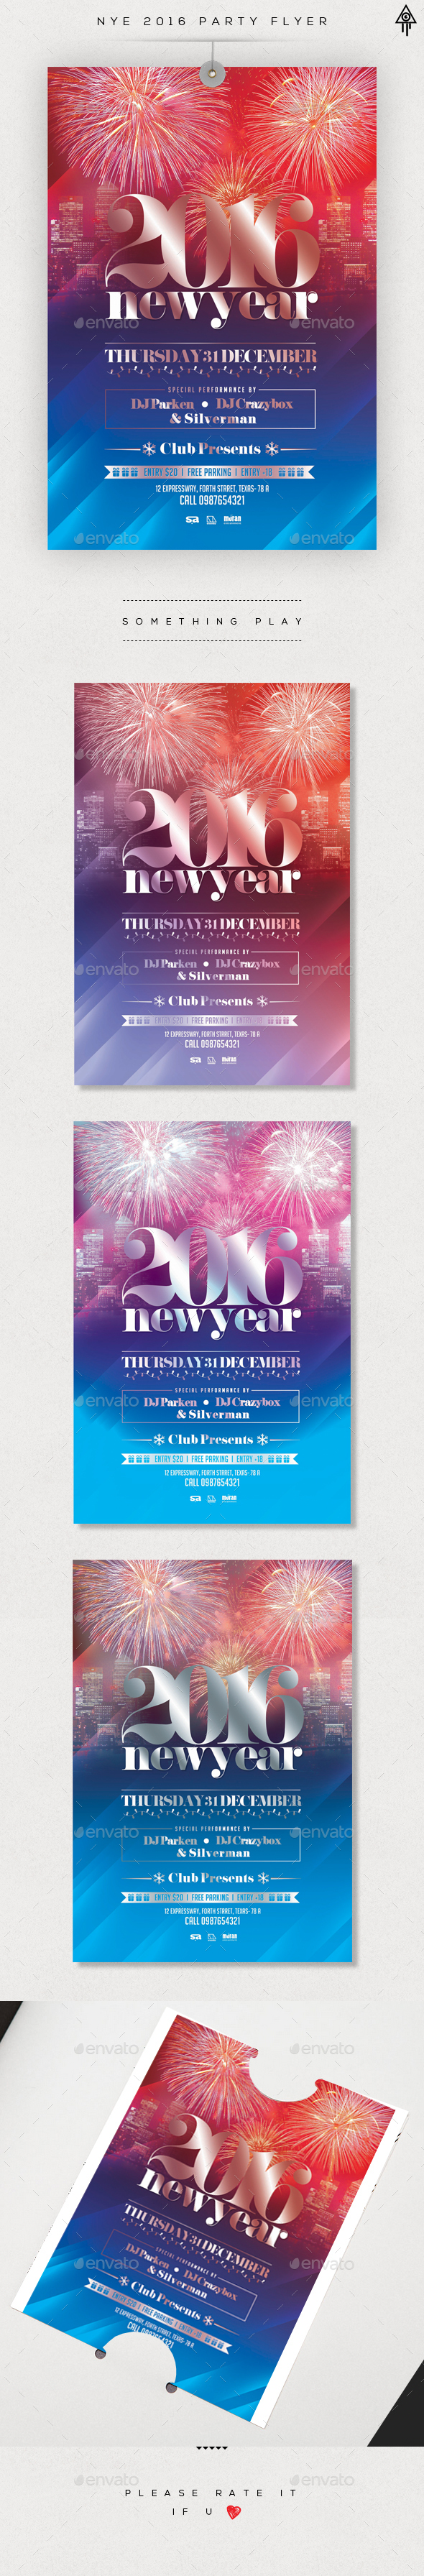 2016 New Year Flyer Template  - Clubs & Parties Events